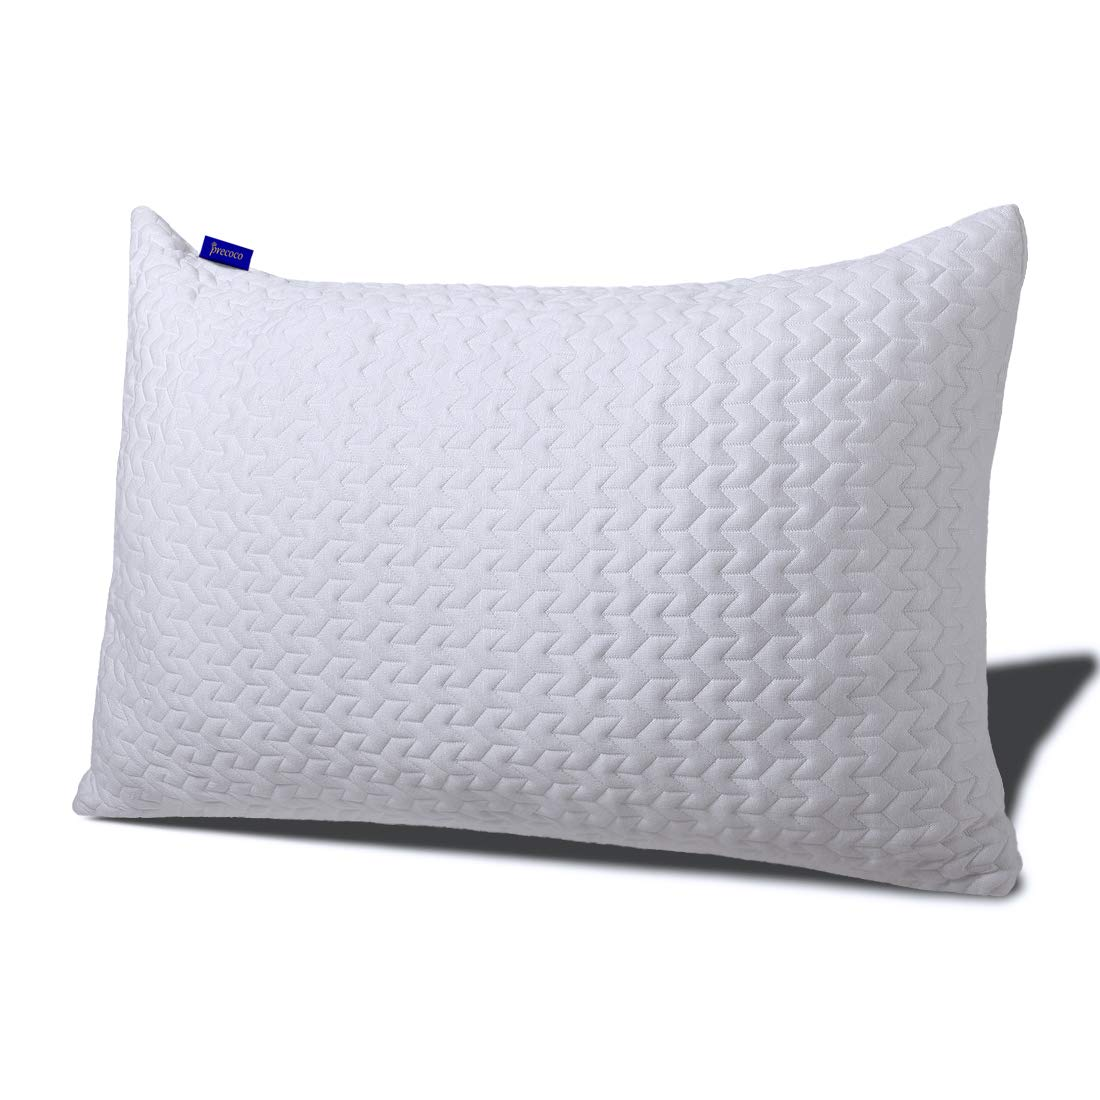 Precoco Stomach Sleeper Pillows for Sleeping